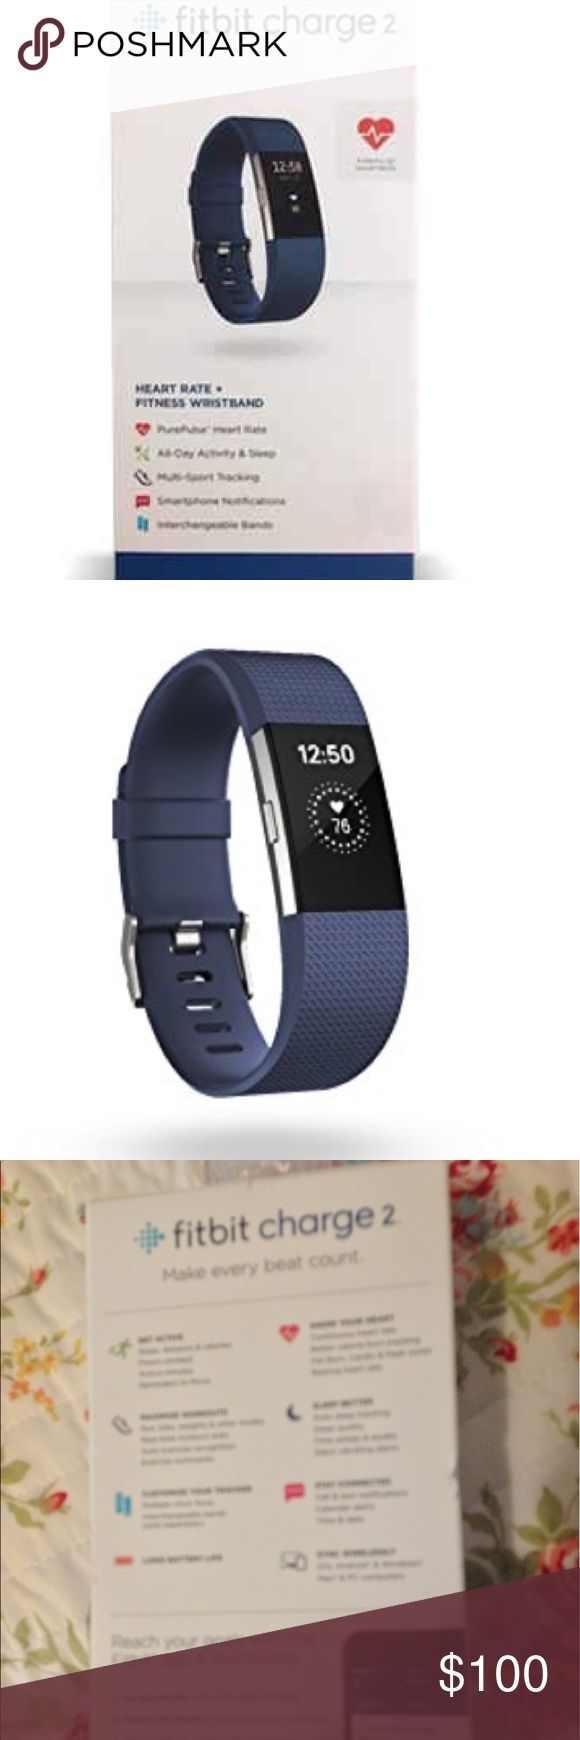 New Fitbit Charge 2. Size Large. New Fitbit Charge 2. Size Large. Fitbit Other